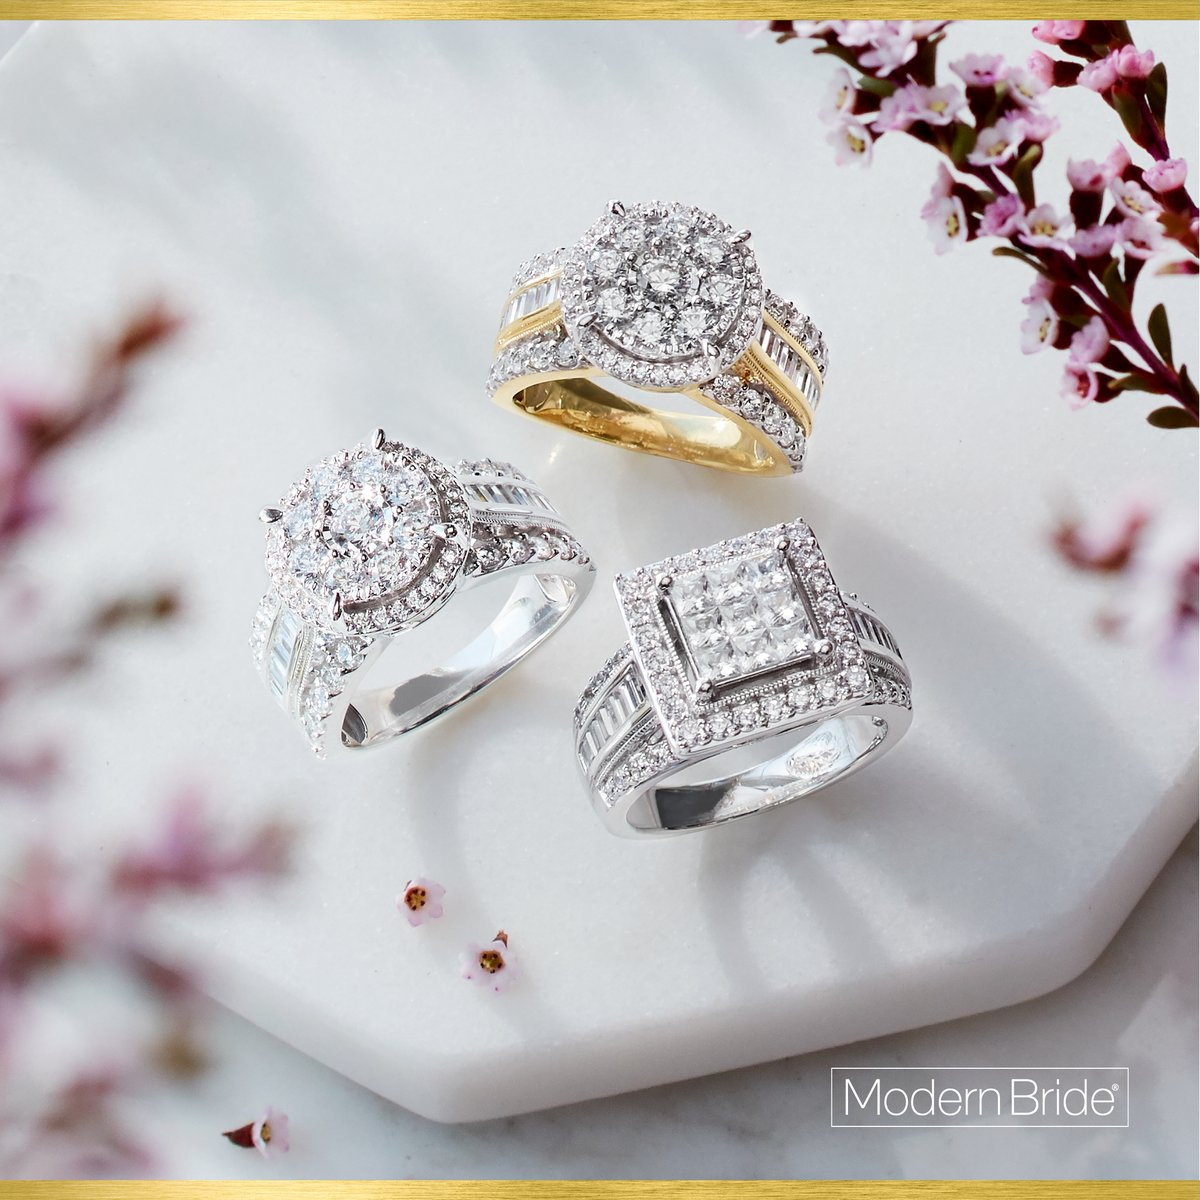 Make her whole year 💍 Win the holidays with something sparkly from Modern Bride 👉